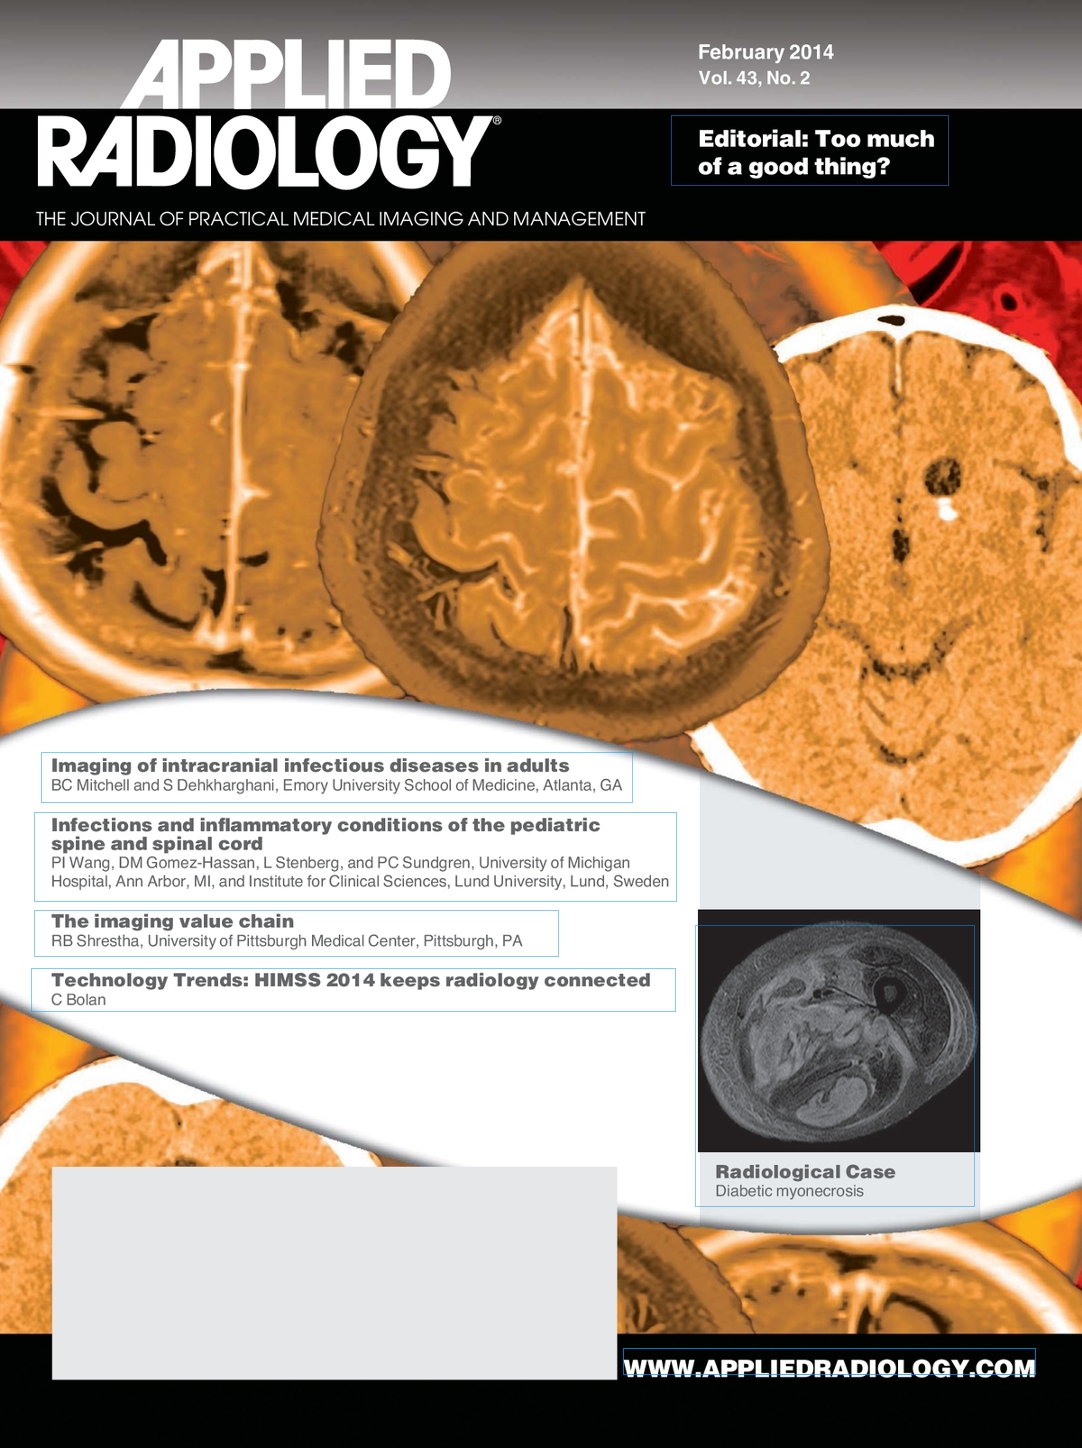 February 2014 Applied Radiology